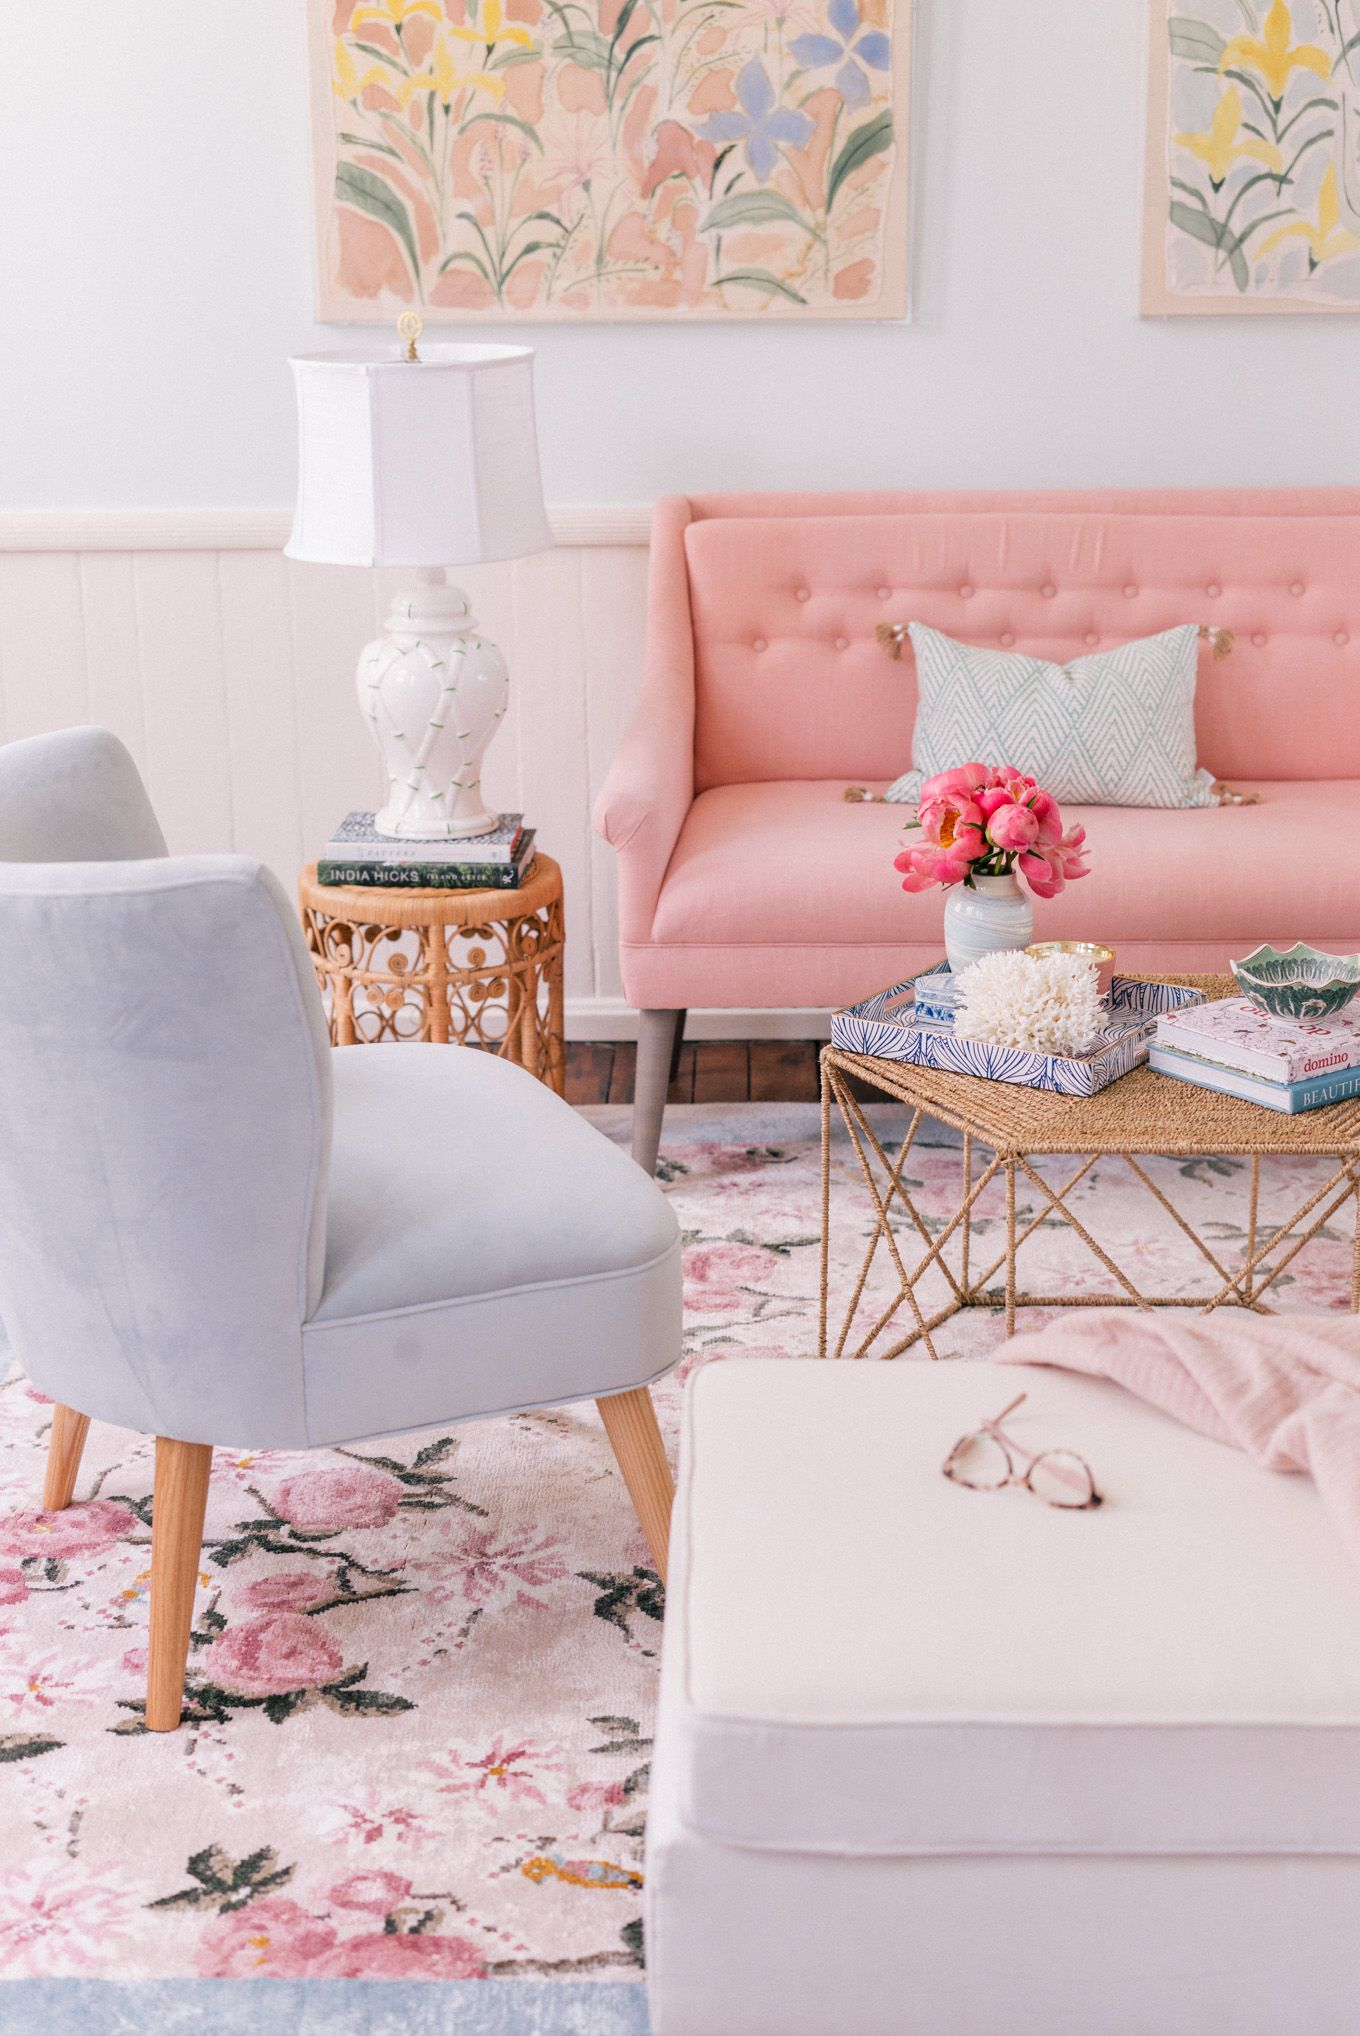 Gal Meets Glam x Lulu & Georgia Garden Party Rug  Gal Meets Glam is part of Pastel living room - Inspired by my love for pastels and chinoiserie, I designed this beautiful rug with Lulu & Georgia  Find out how I styled the rug in our new office!